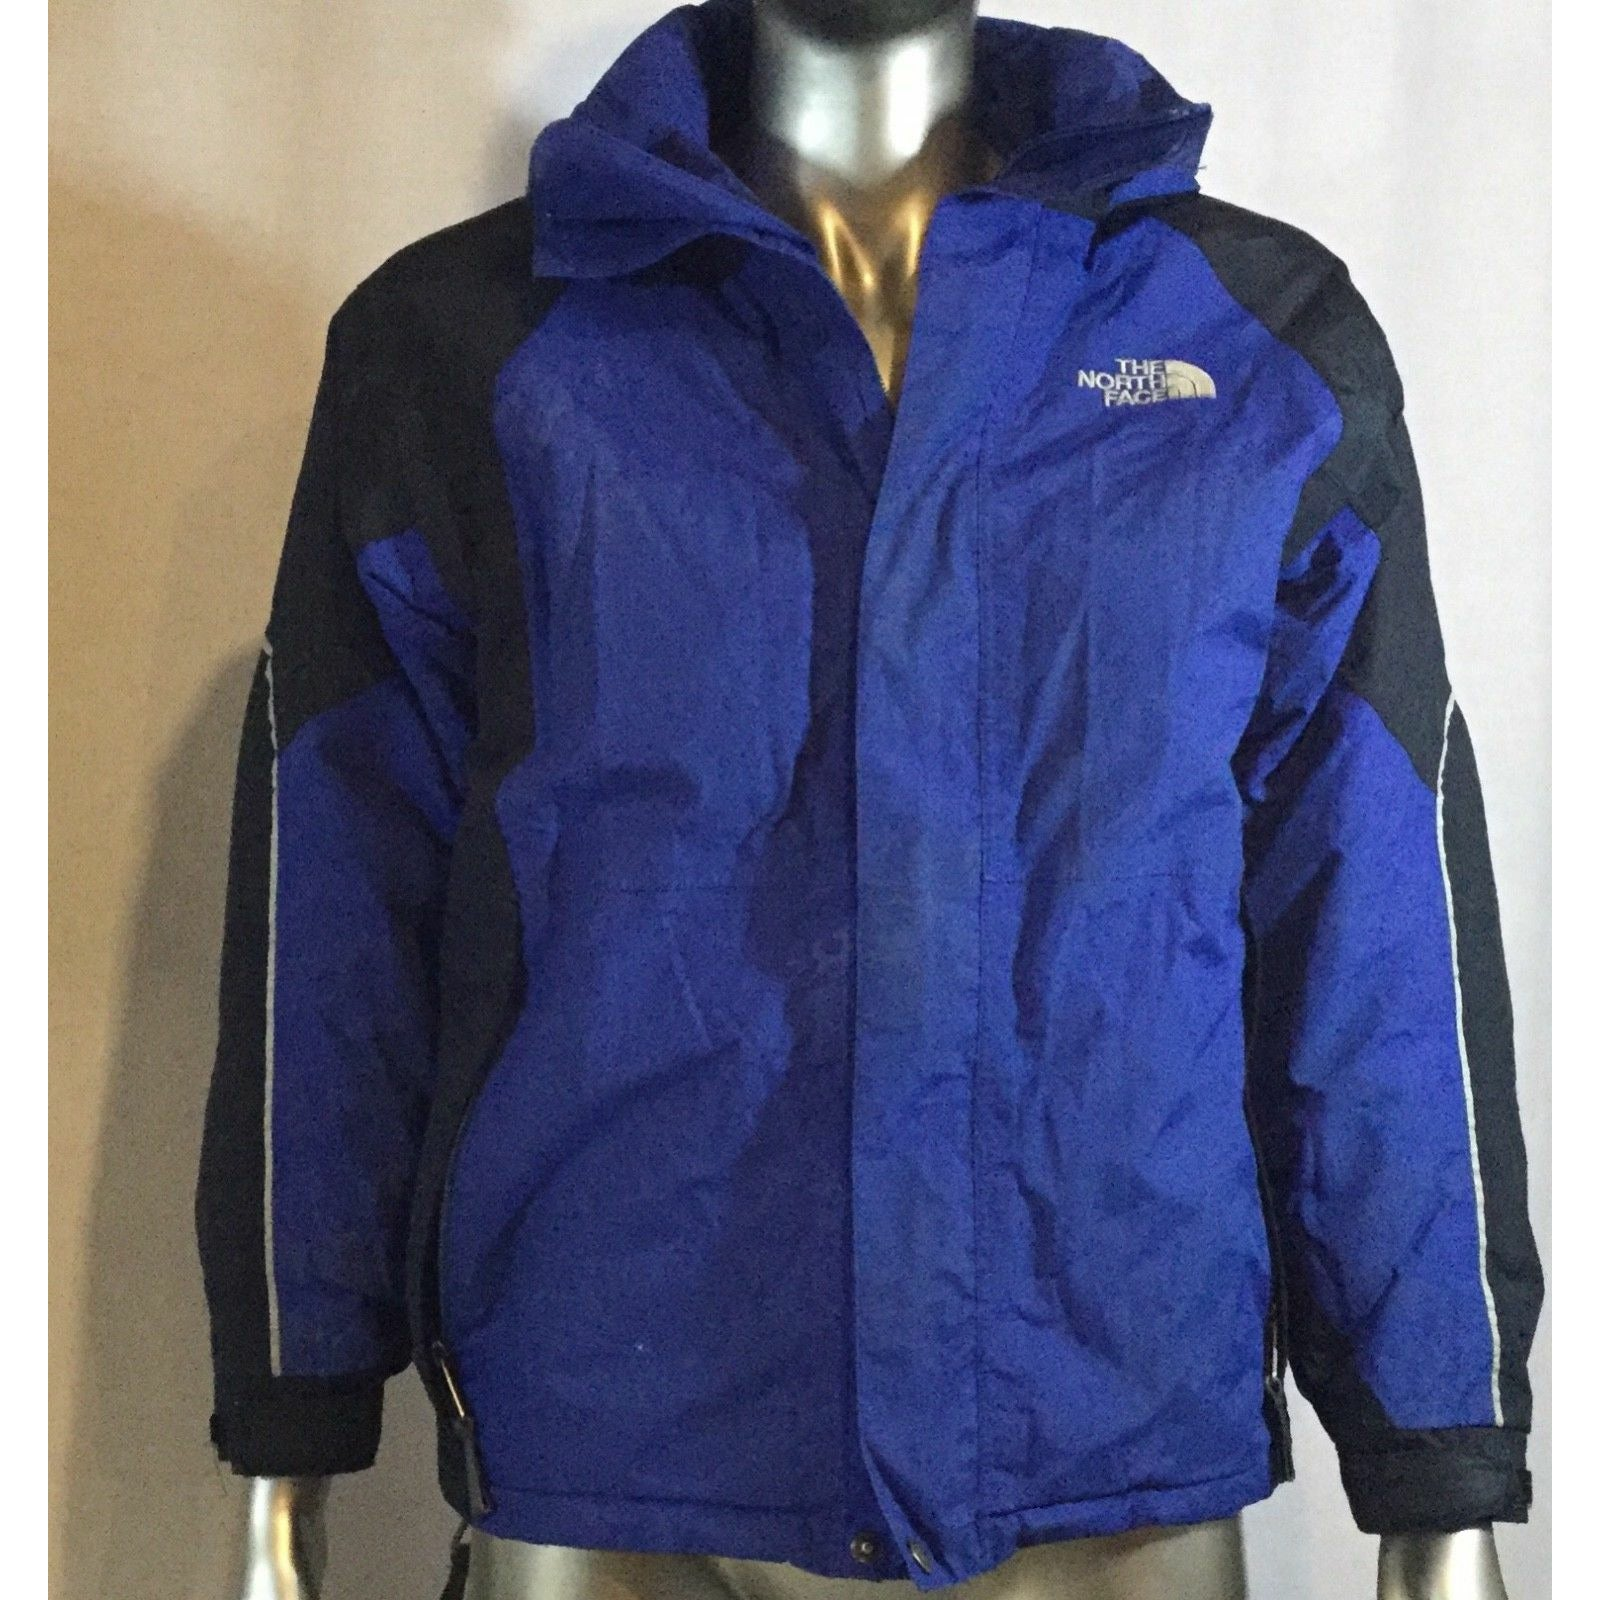 Youth Columbia Jacket, Size Medium, Color, blue and black